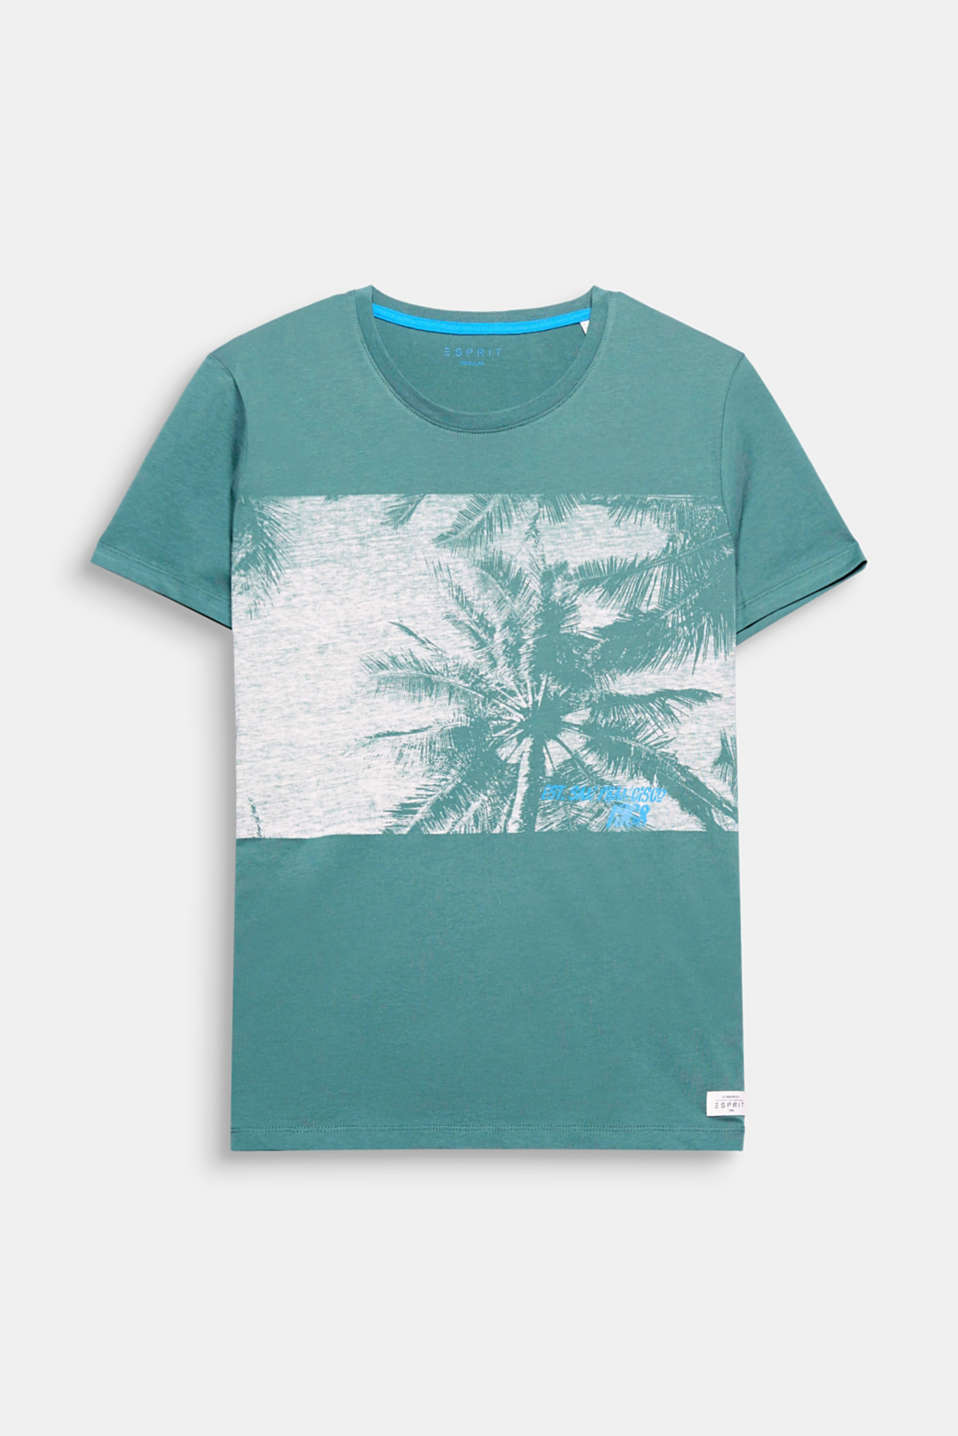 The wide block stripes with a palm print give this modern T-shirt a summery feeling.